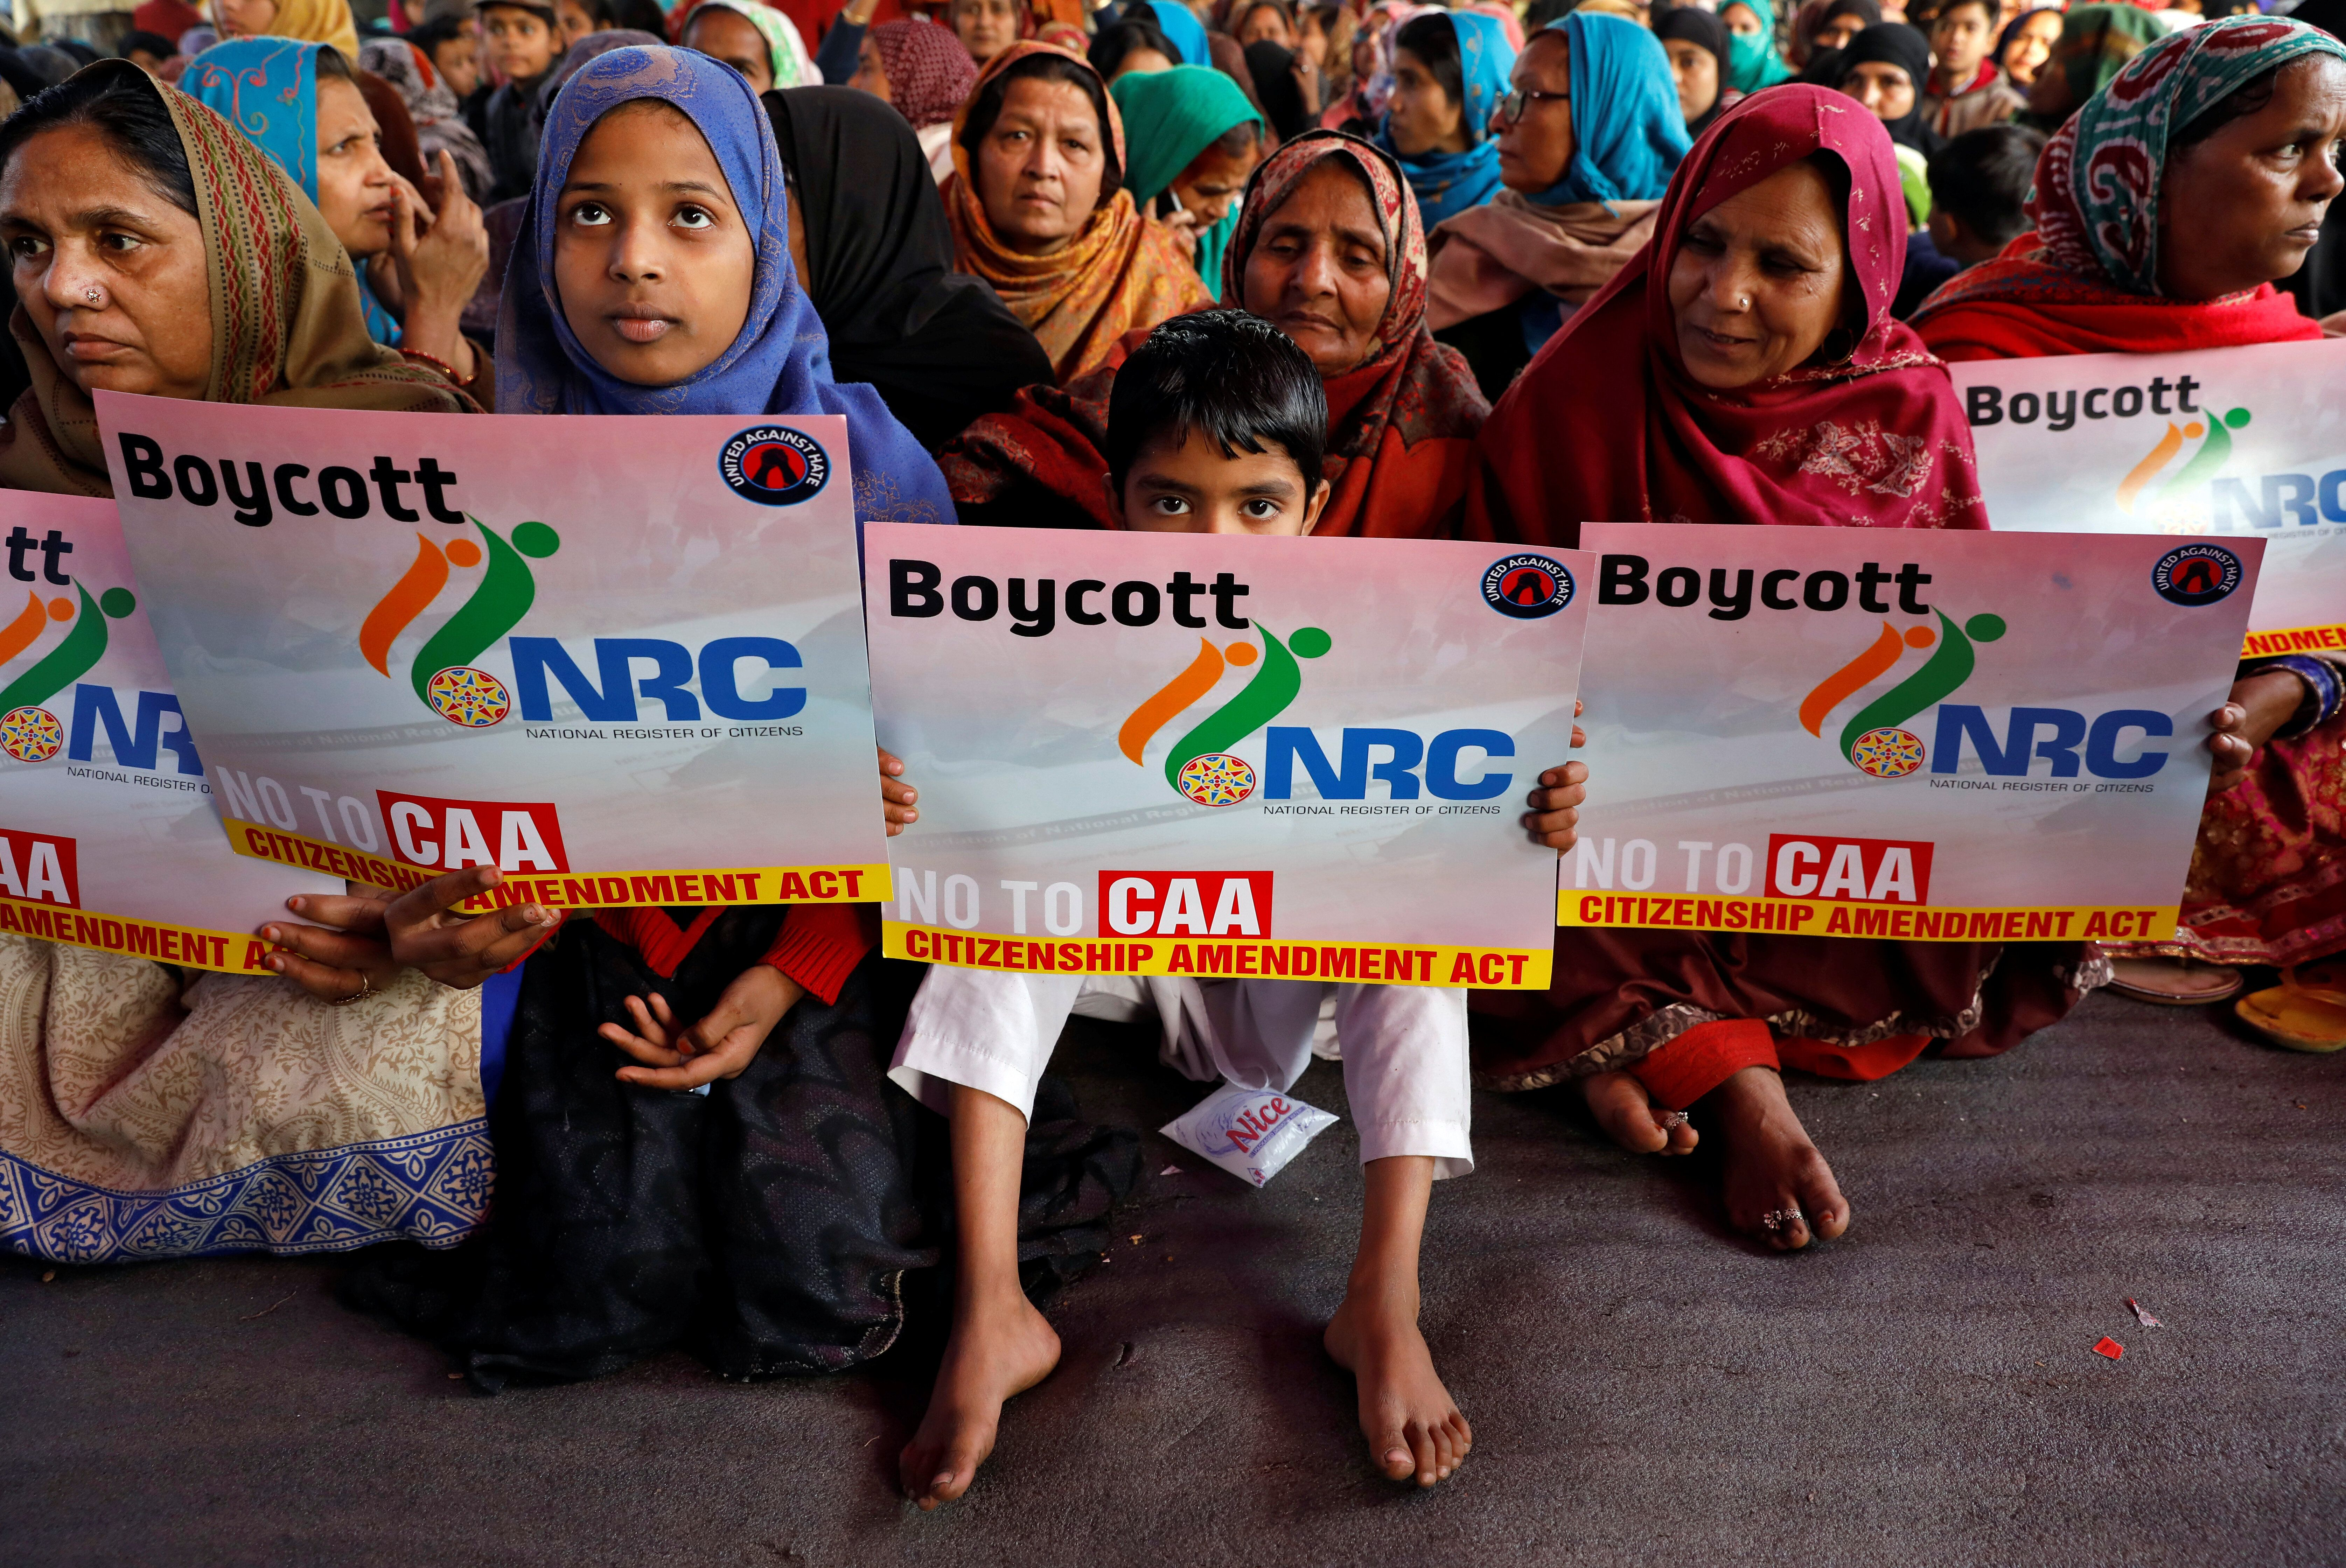 Muslim Women Are Protesting India's Citizenship Law By Occupying Streets